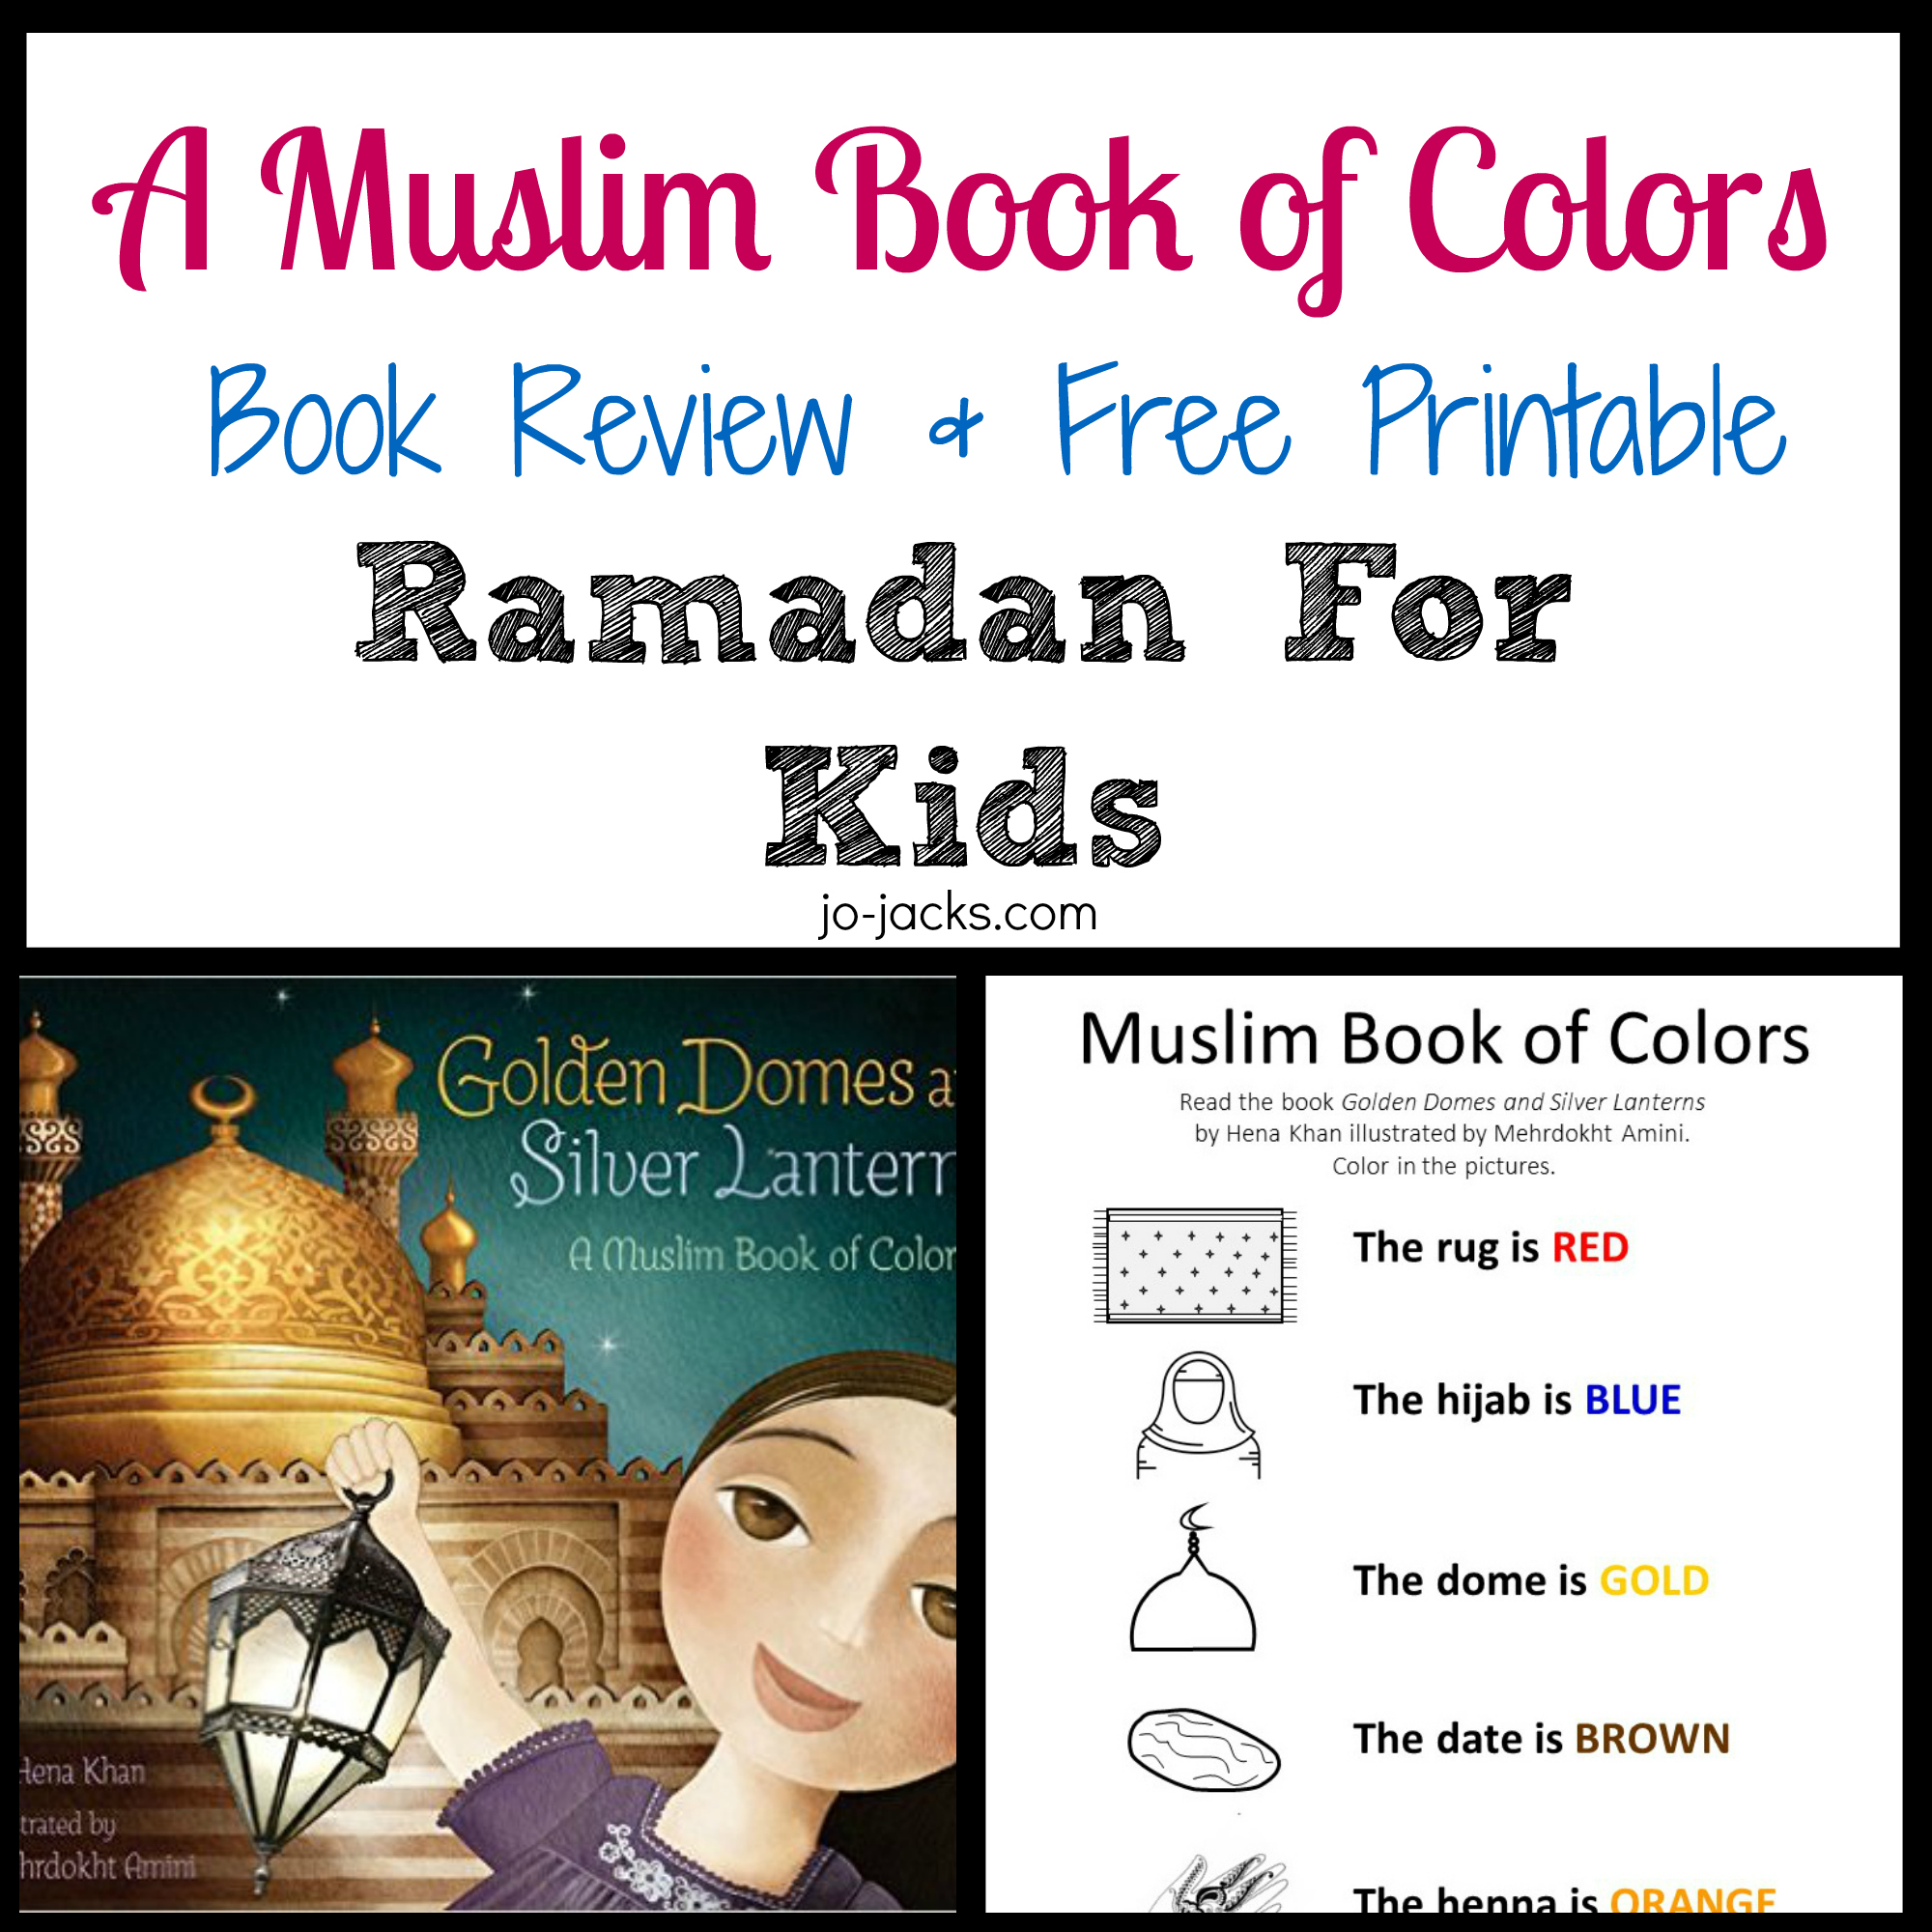 Muslim book of colors